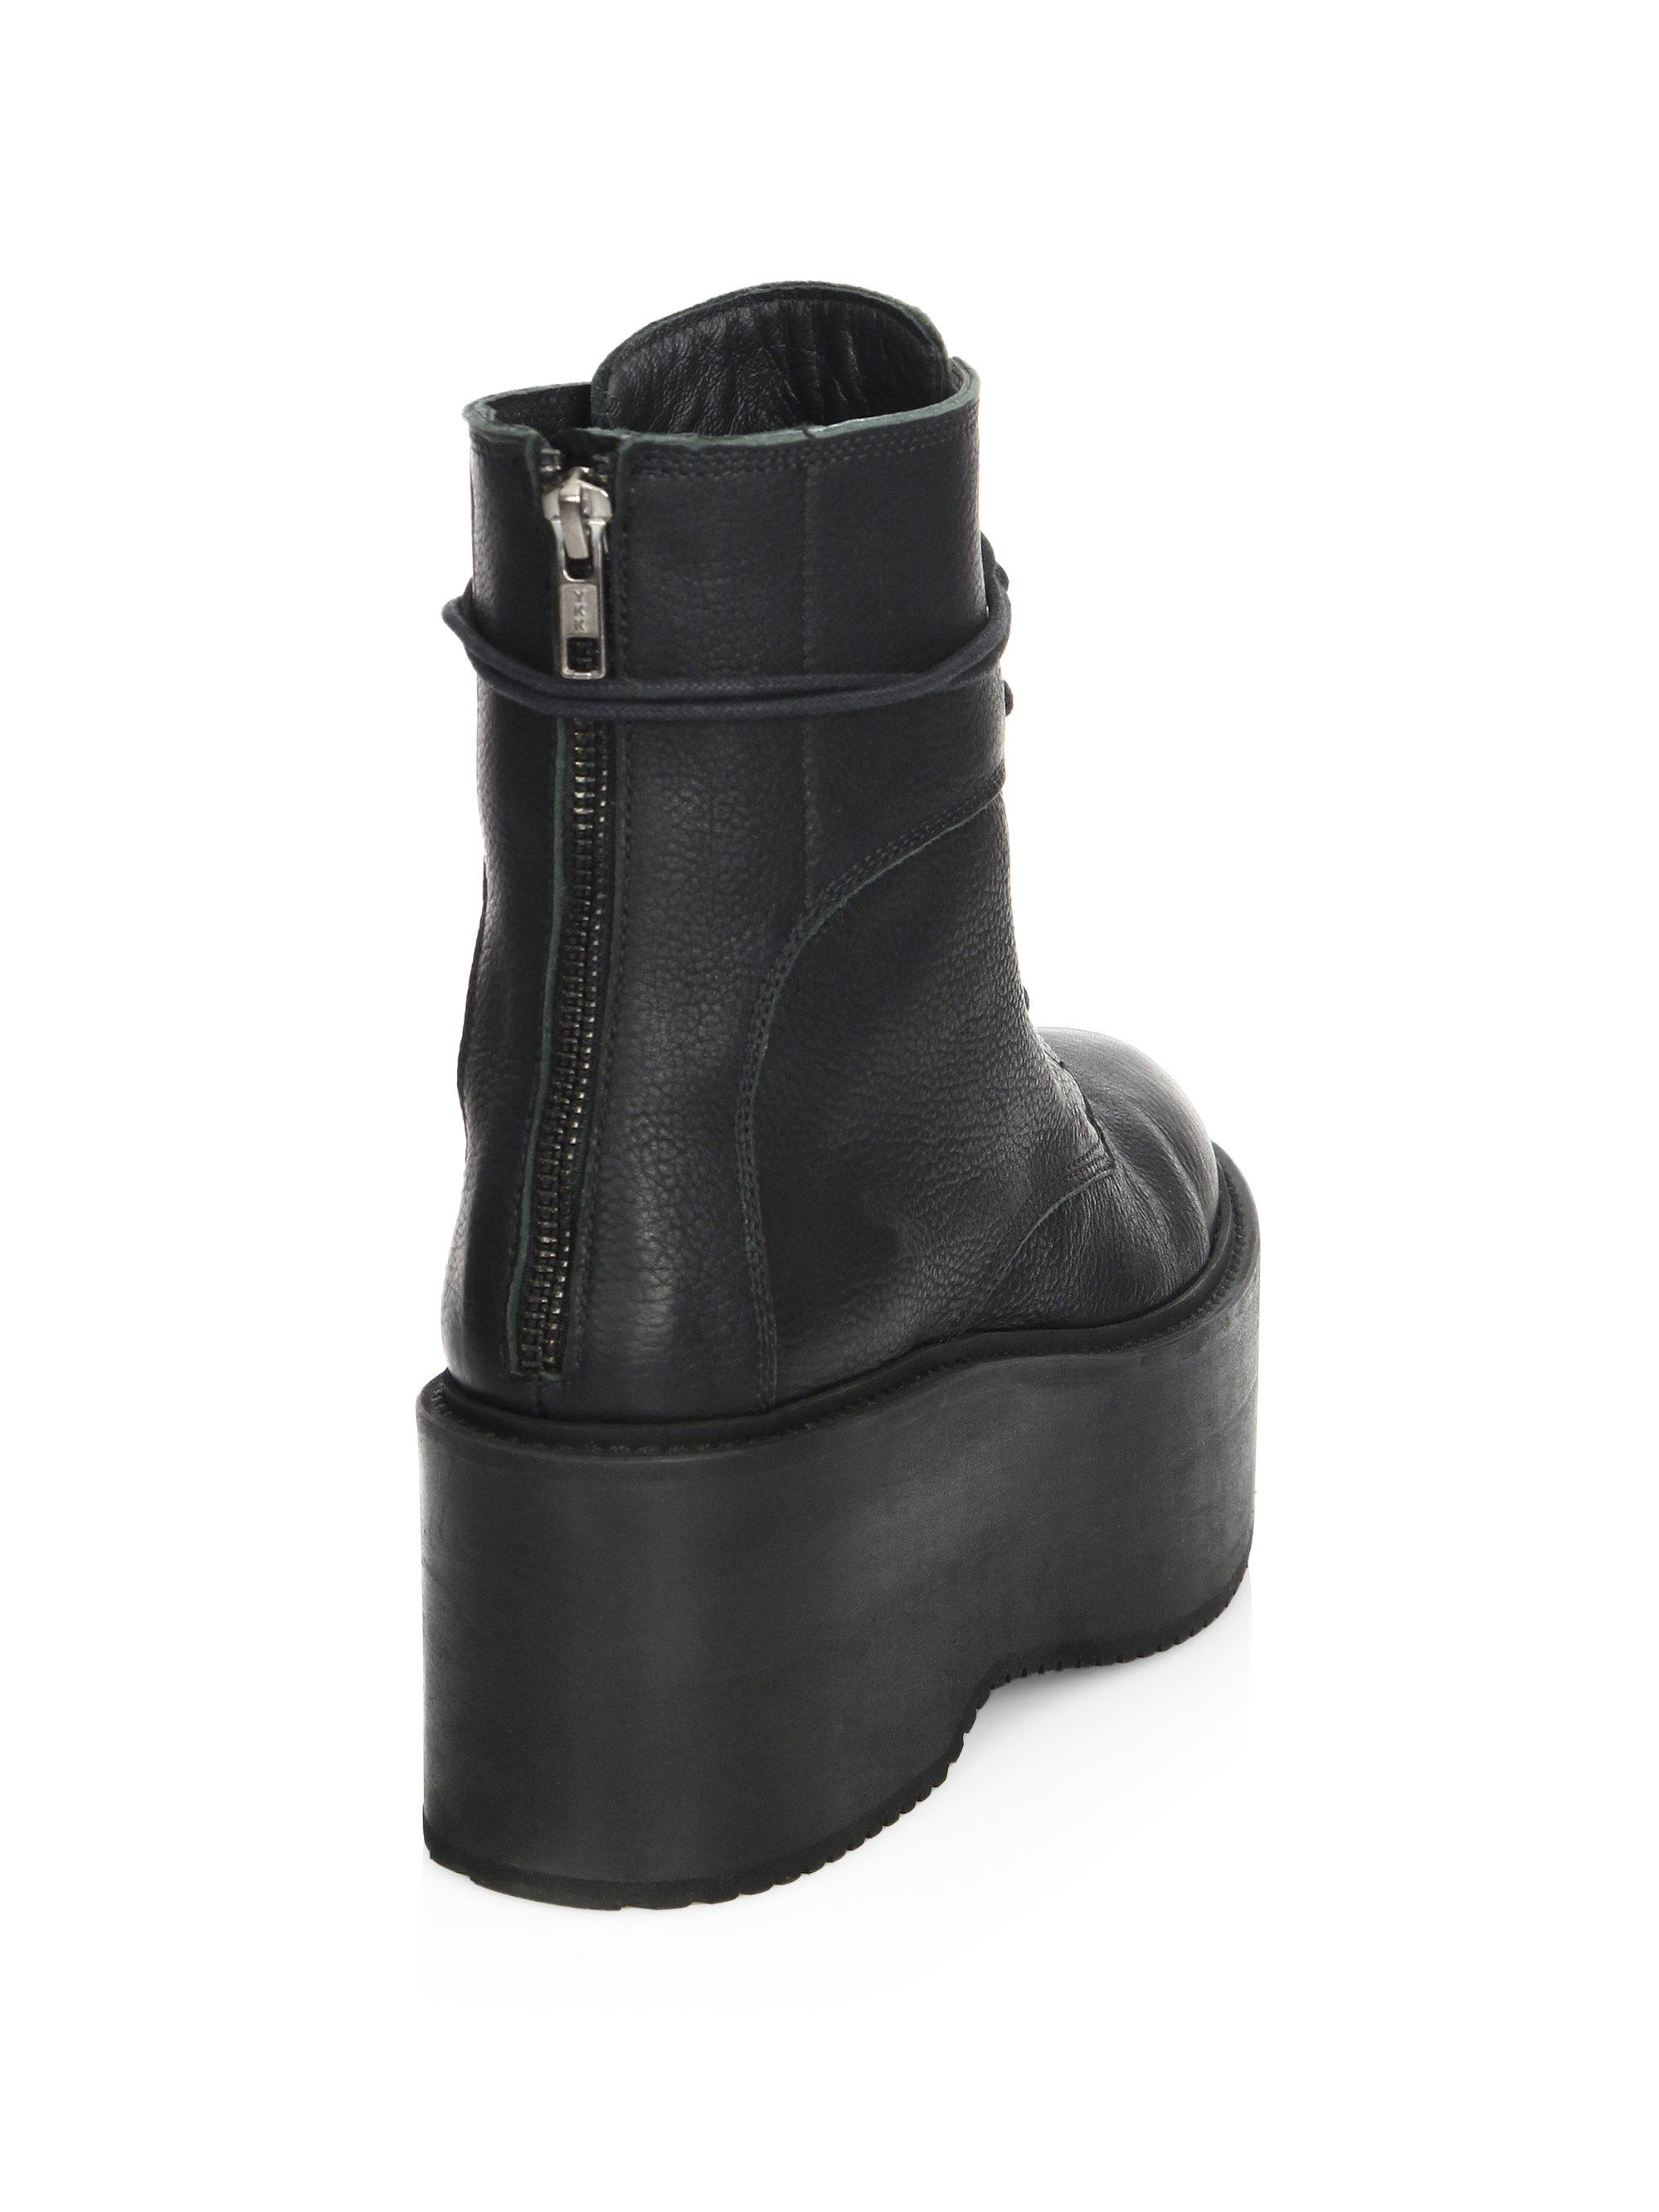 LD Tuttle - Black The Plunge Leather Mid-calf Platform Boots - Lyst. View  fullscreen